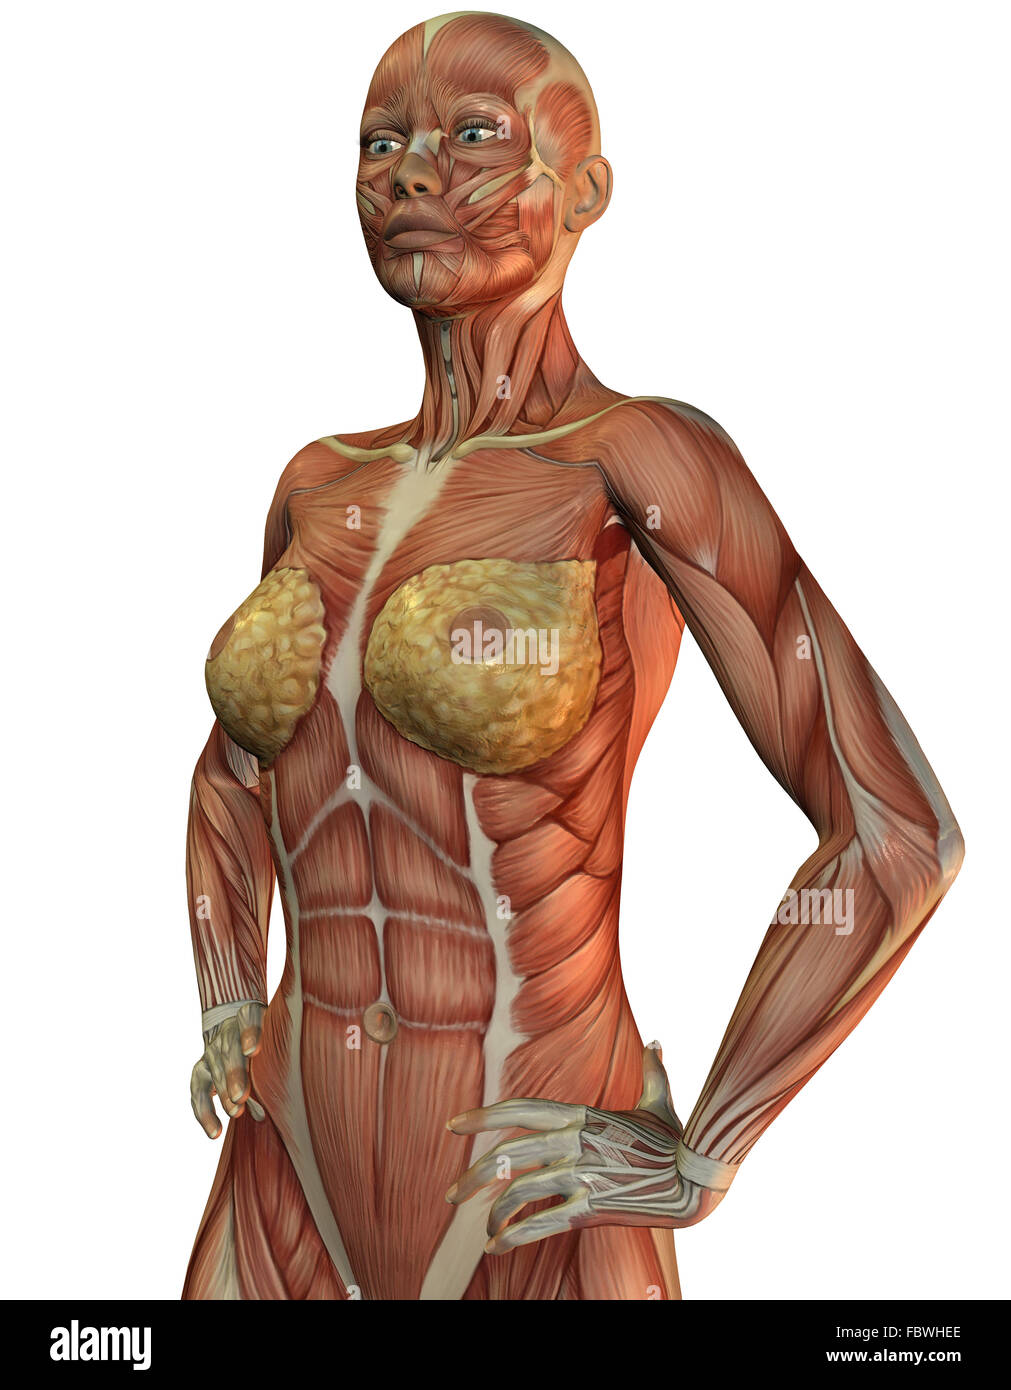 Building Muscle Tissue Stock Photos & Building Muscle Tissue Stock ...